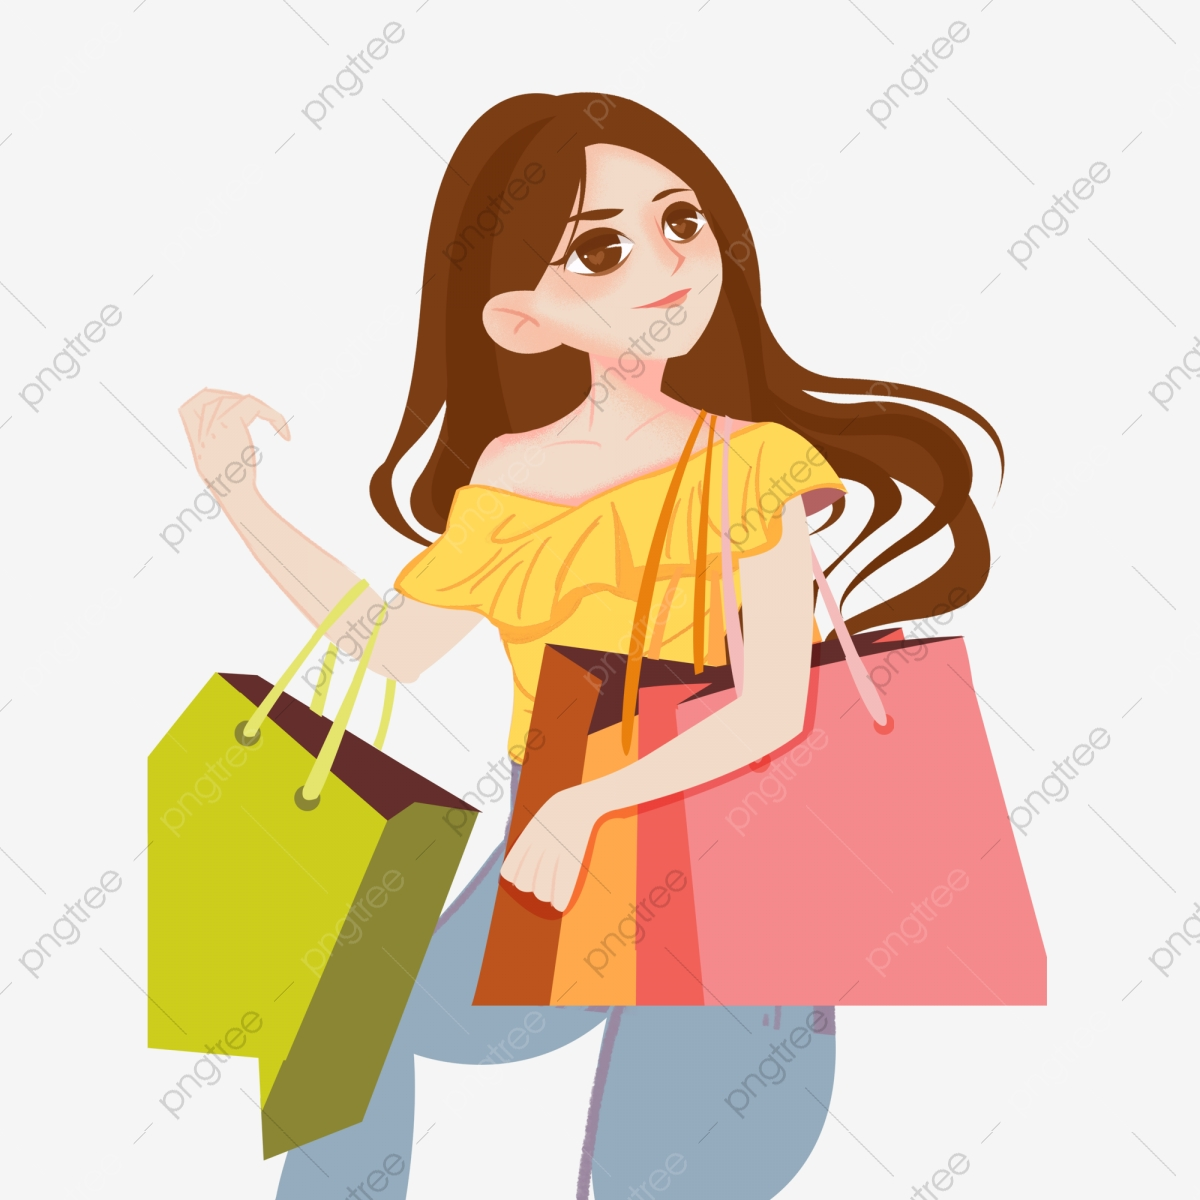 Fashion Girls Vector PSD And Clipart With Transparent